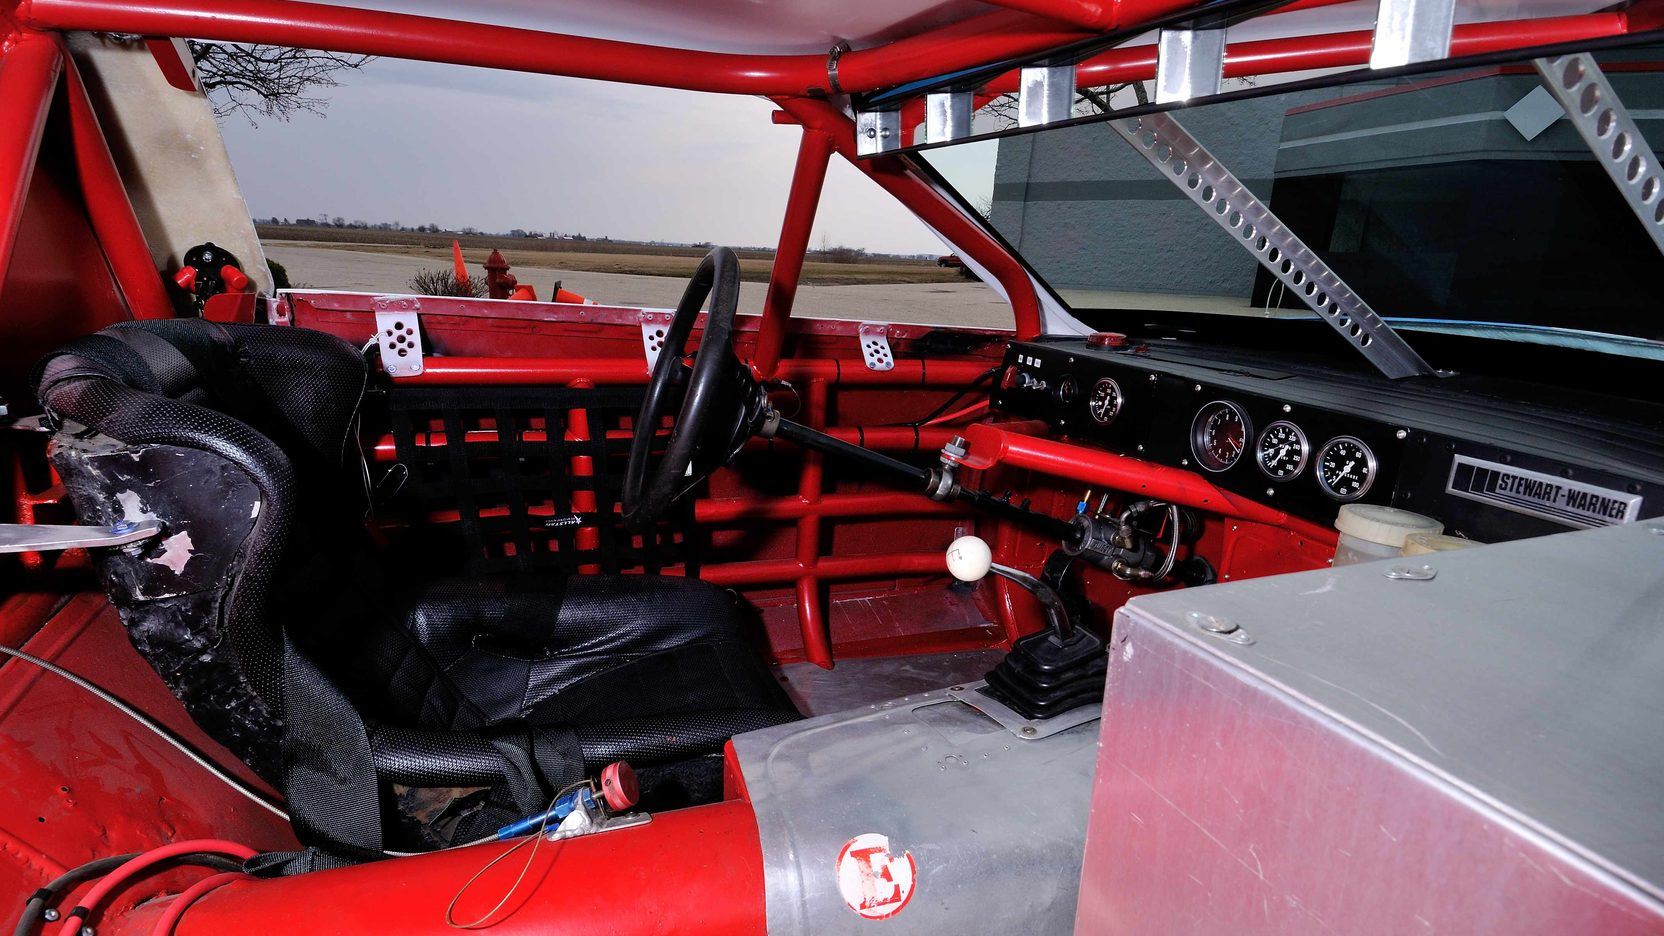 1982 Chevrolet Camaro Le Mans Race Car interior